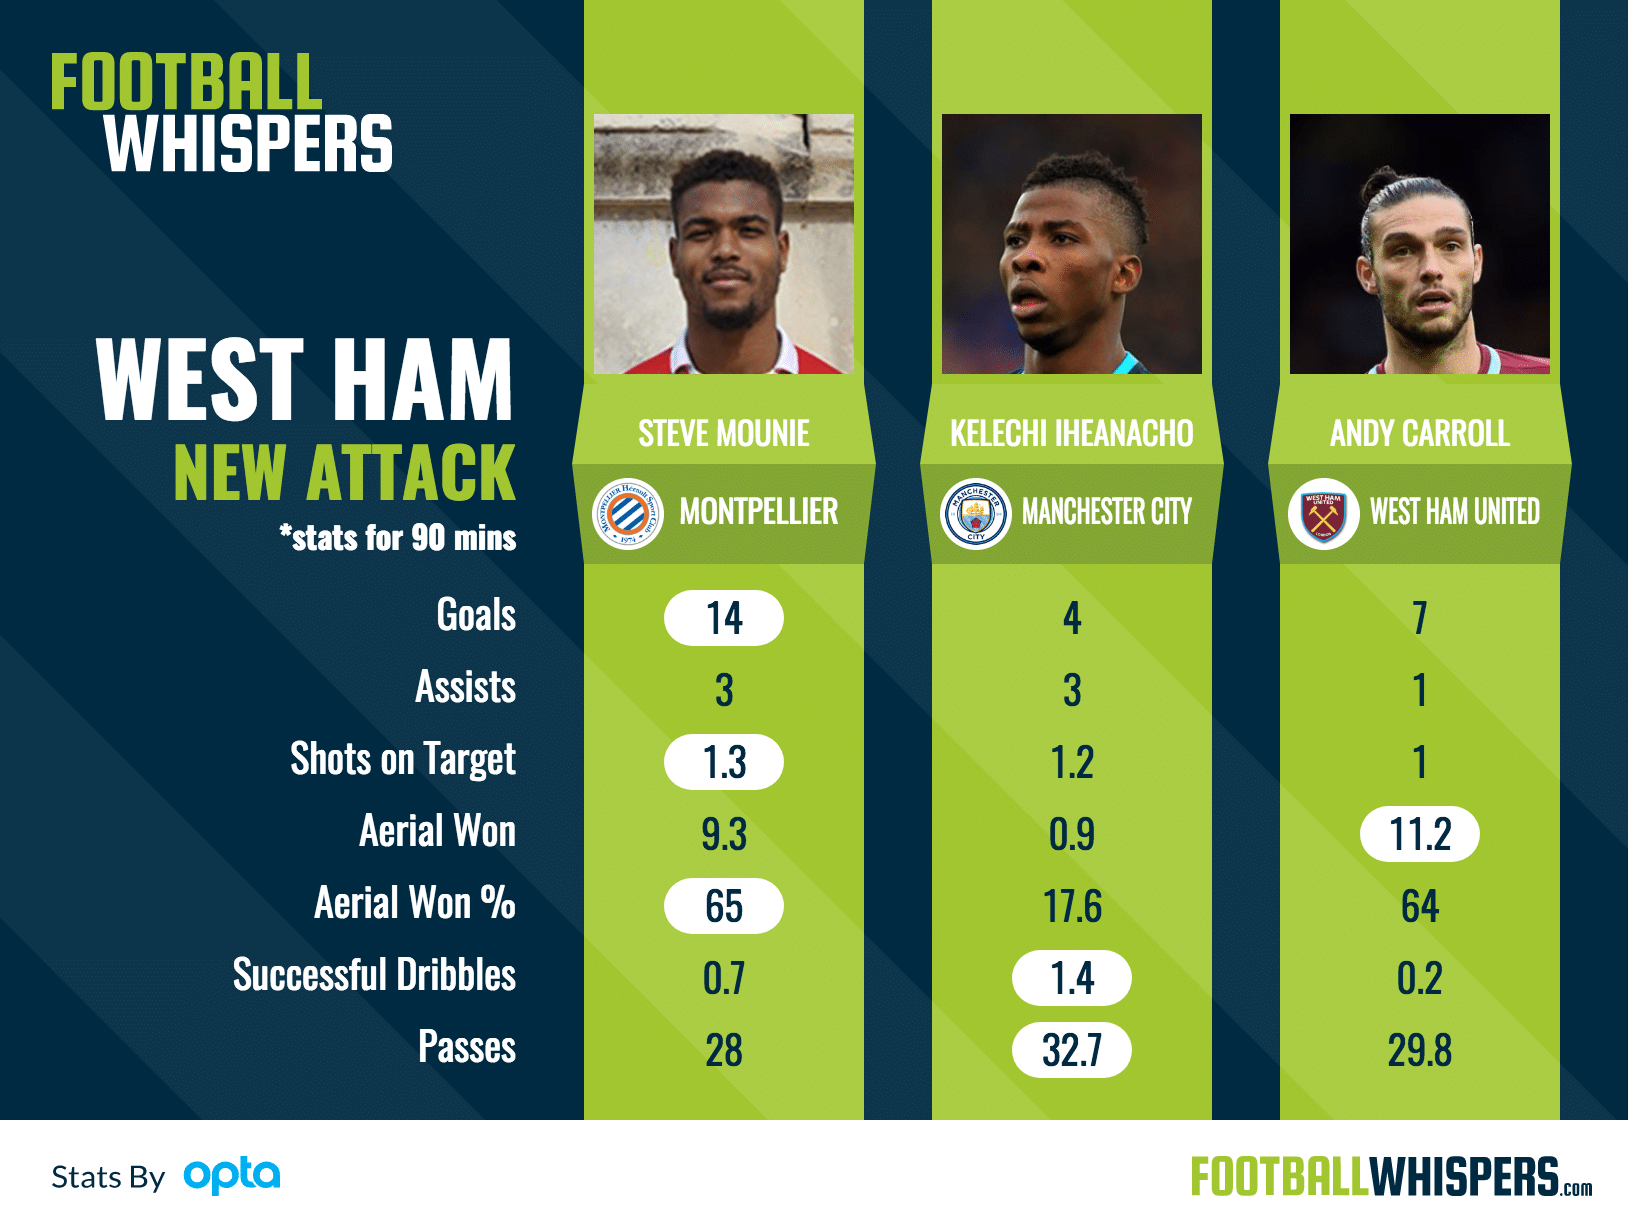 How Steve Mounie compares to the West Ham options.